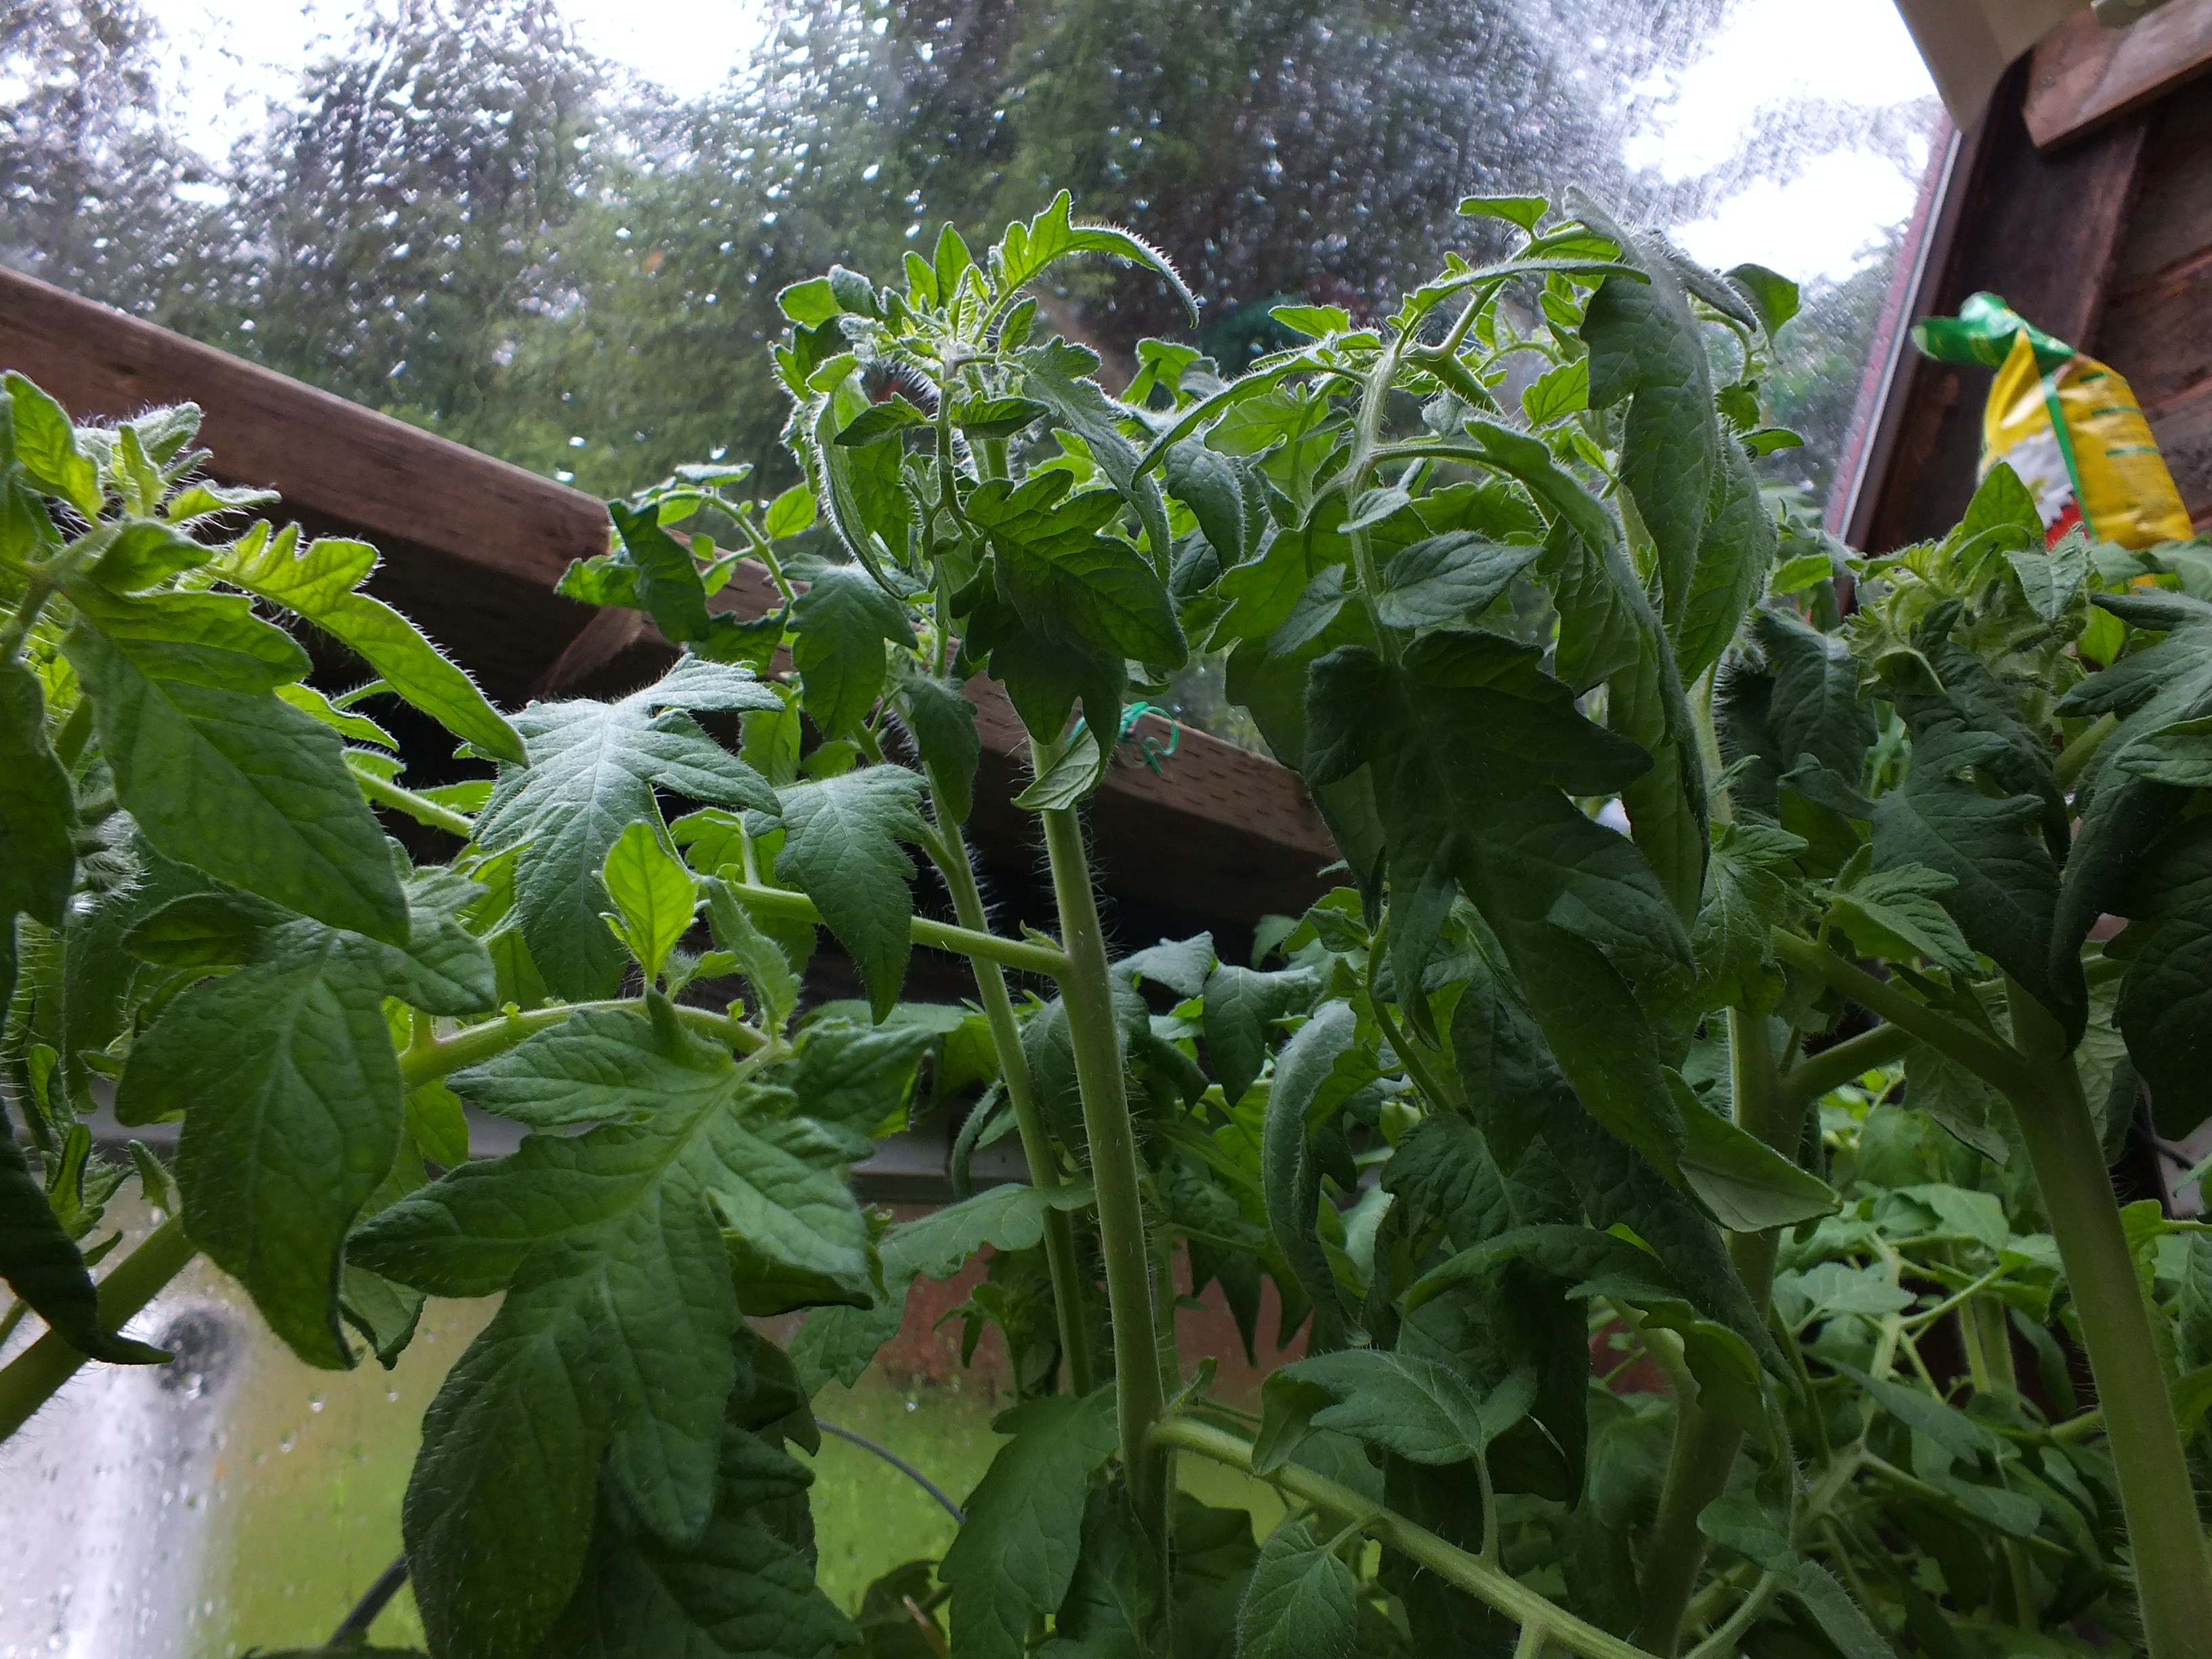 These tomato plants desperately need thinning.